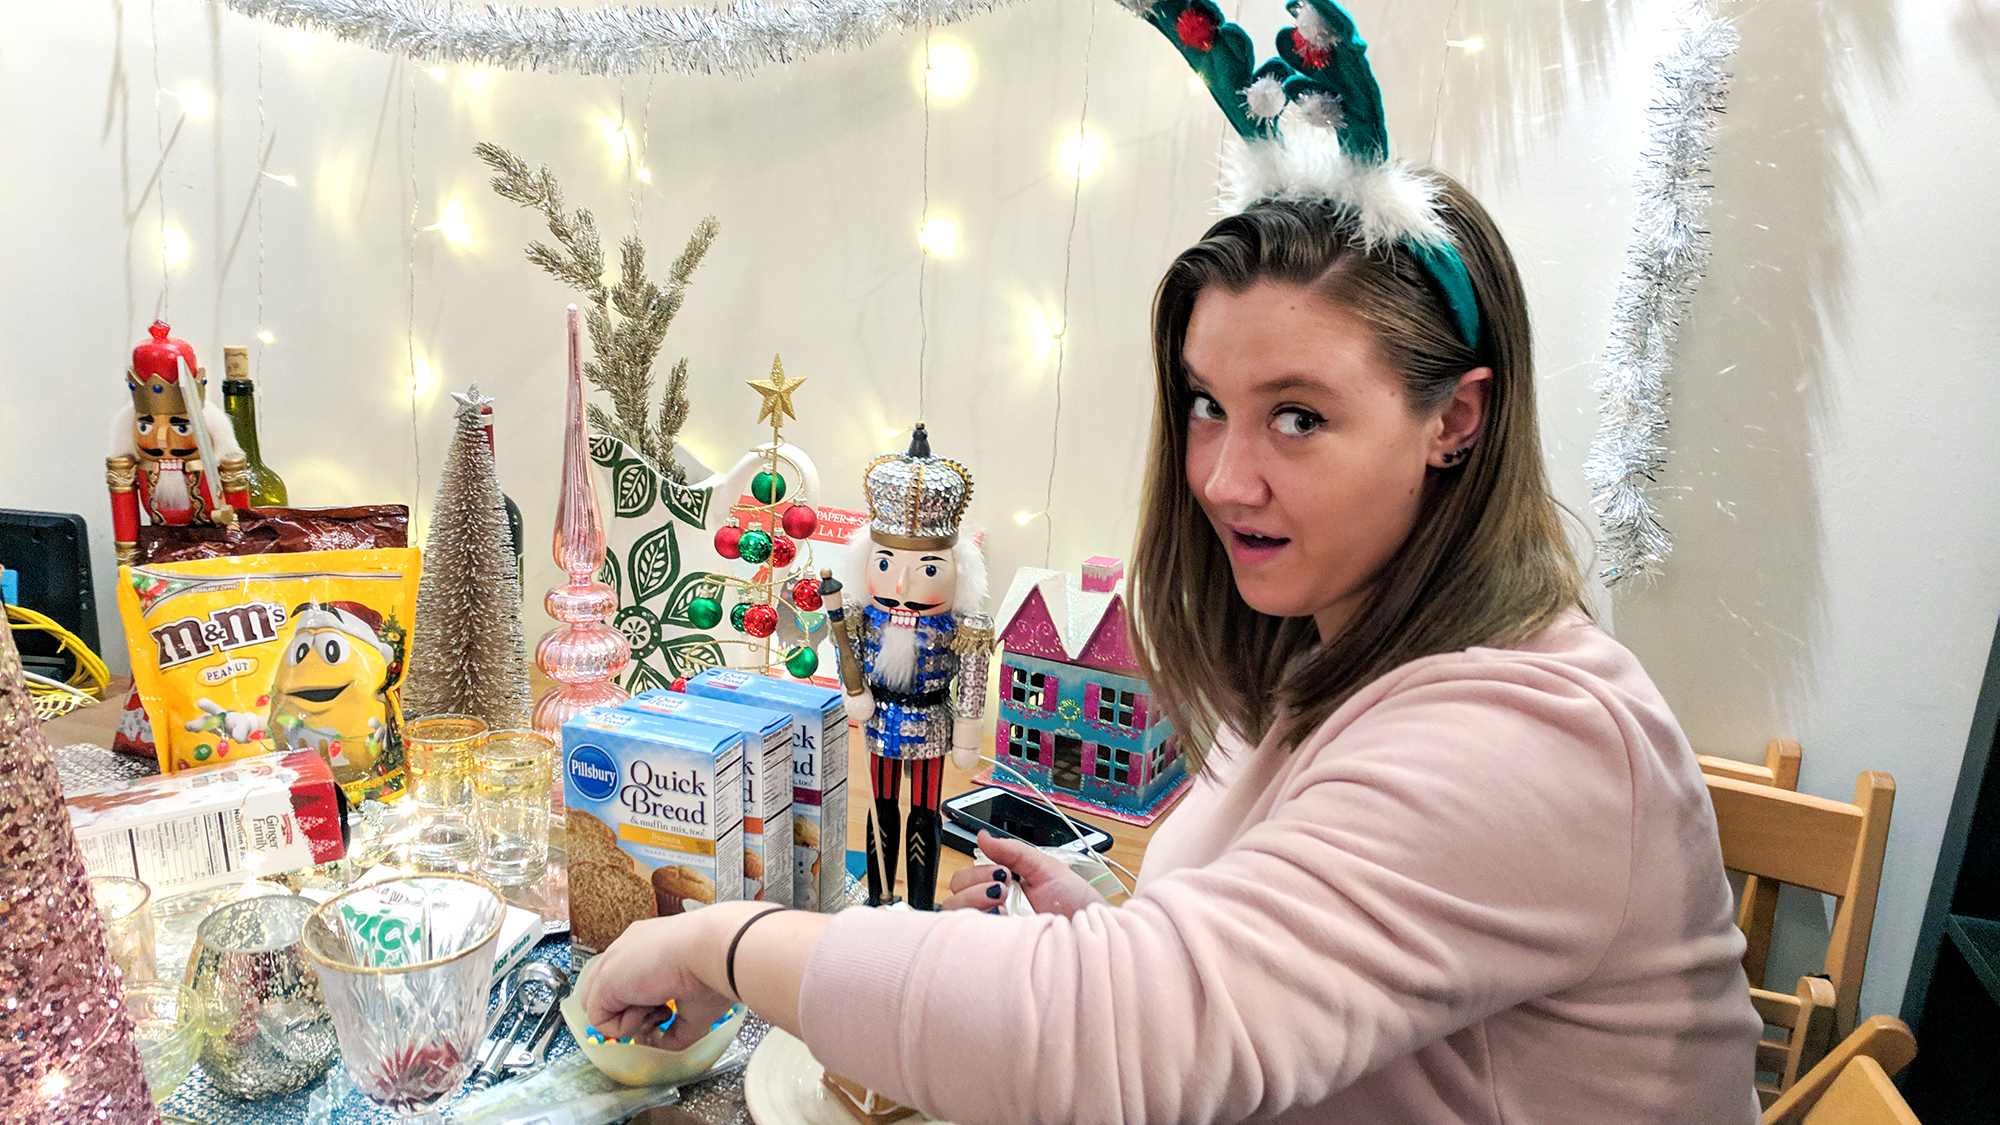 gingerbread house making party diy christmas ideas - Hey Mishka (8)